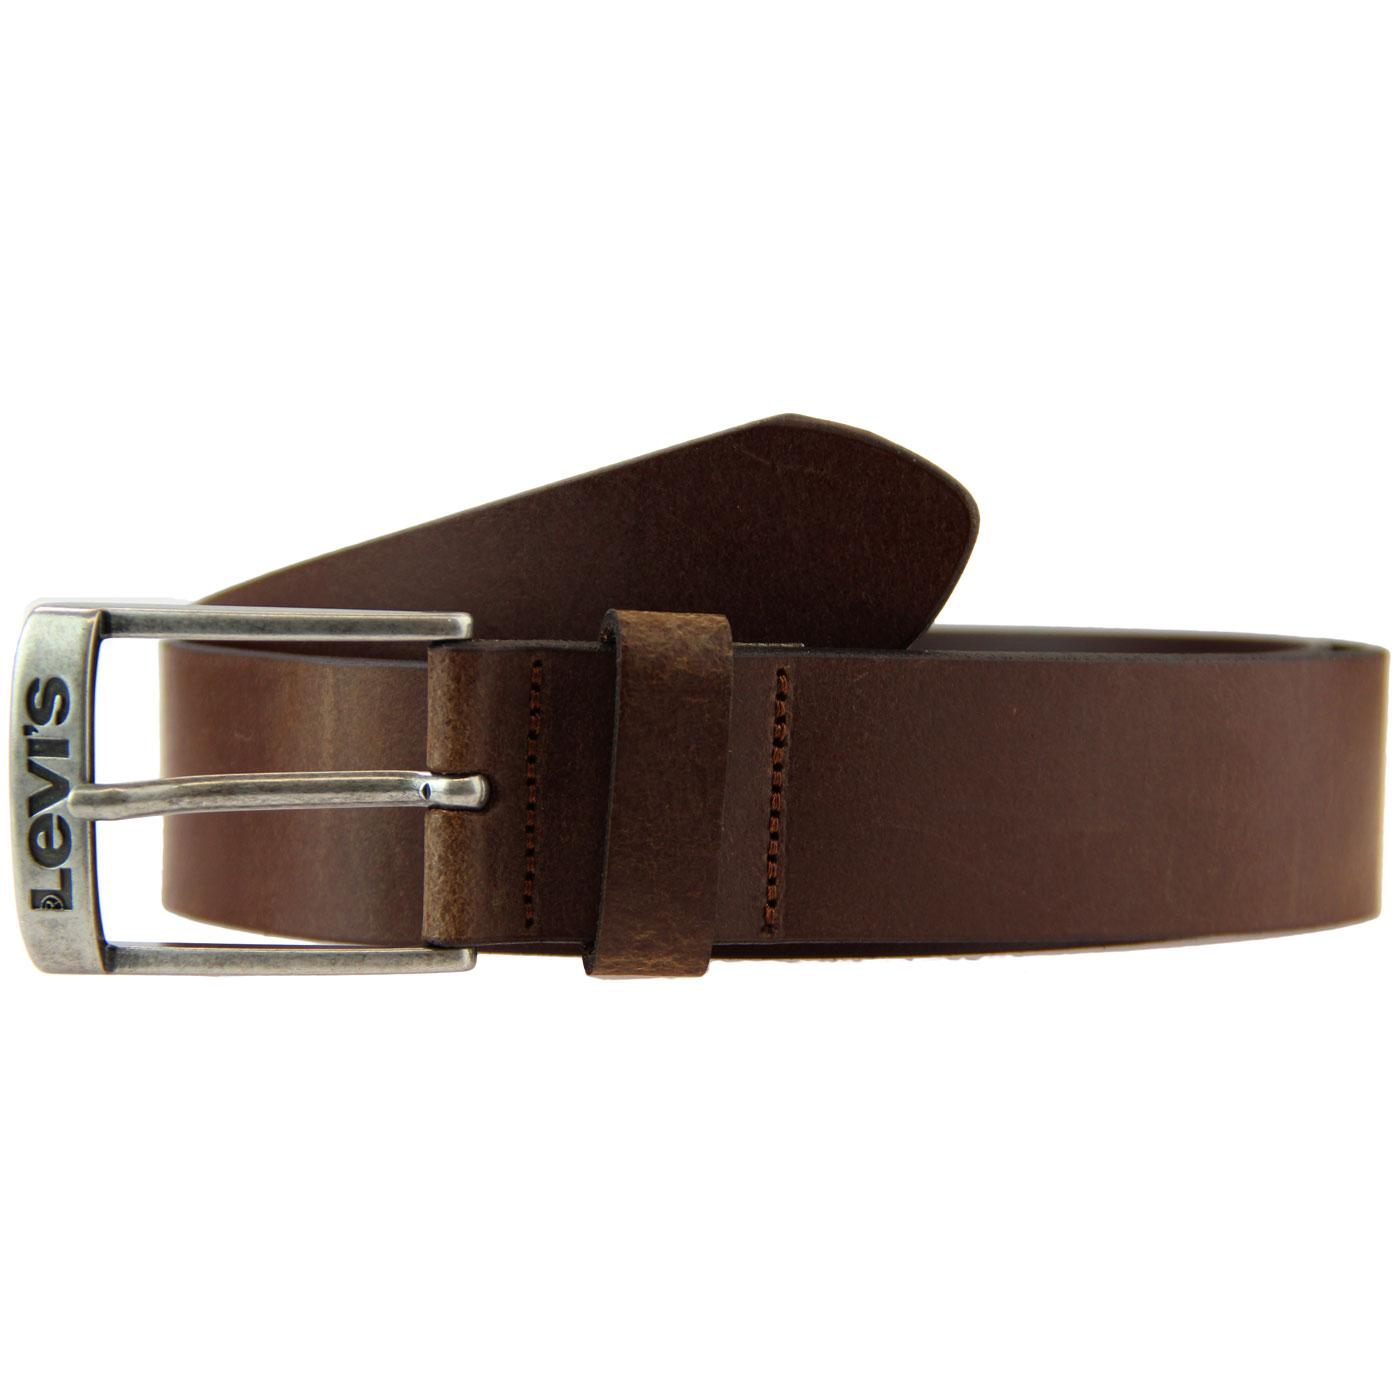 New Duncan LEVI'S Leather Logo Buckle Belt (Brown)